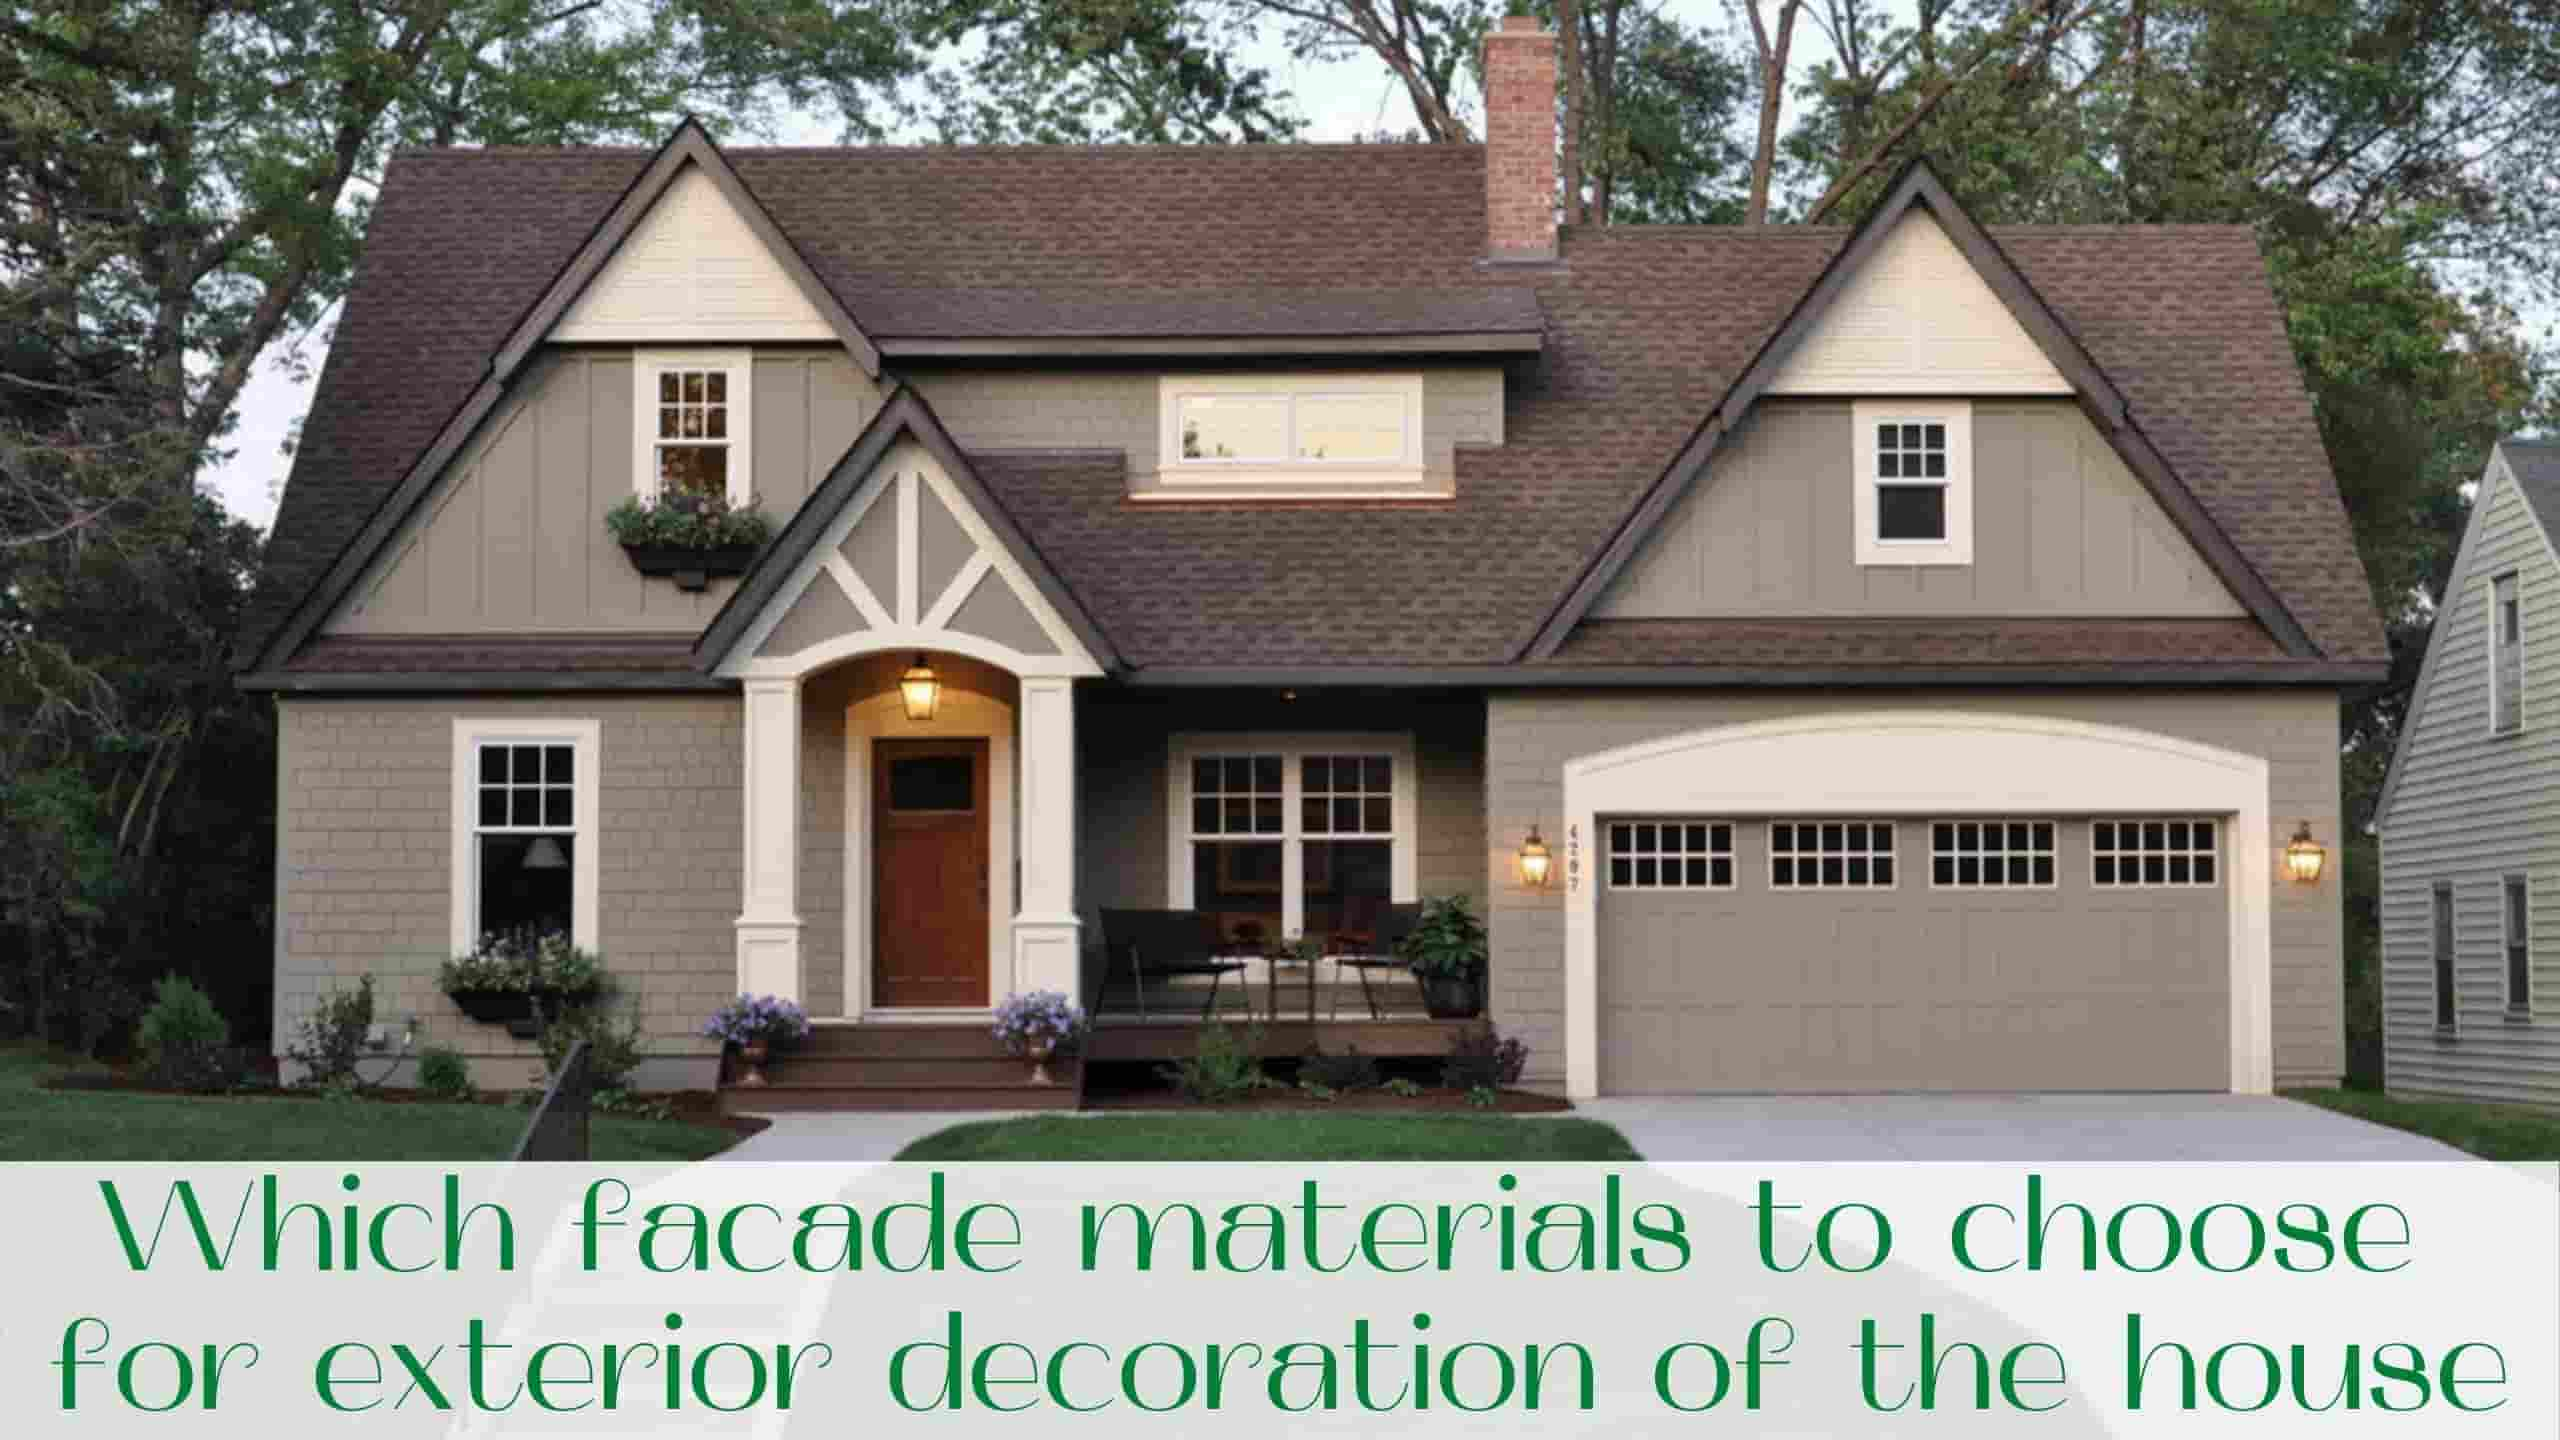 image-Which-facade-materials-to-choose-for-exterior-decoration